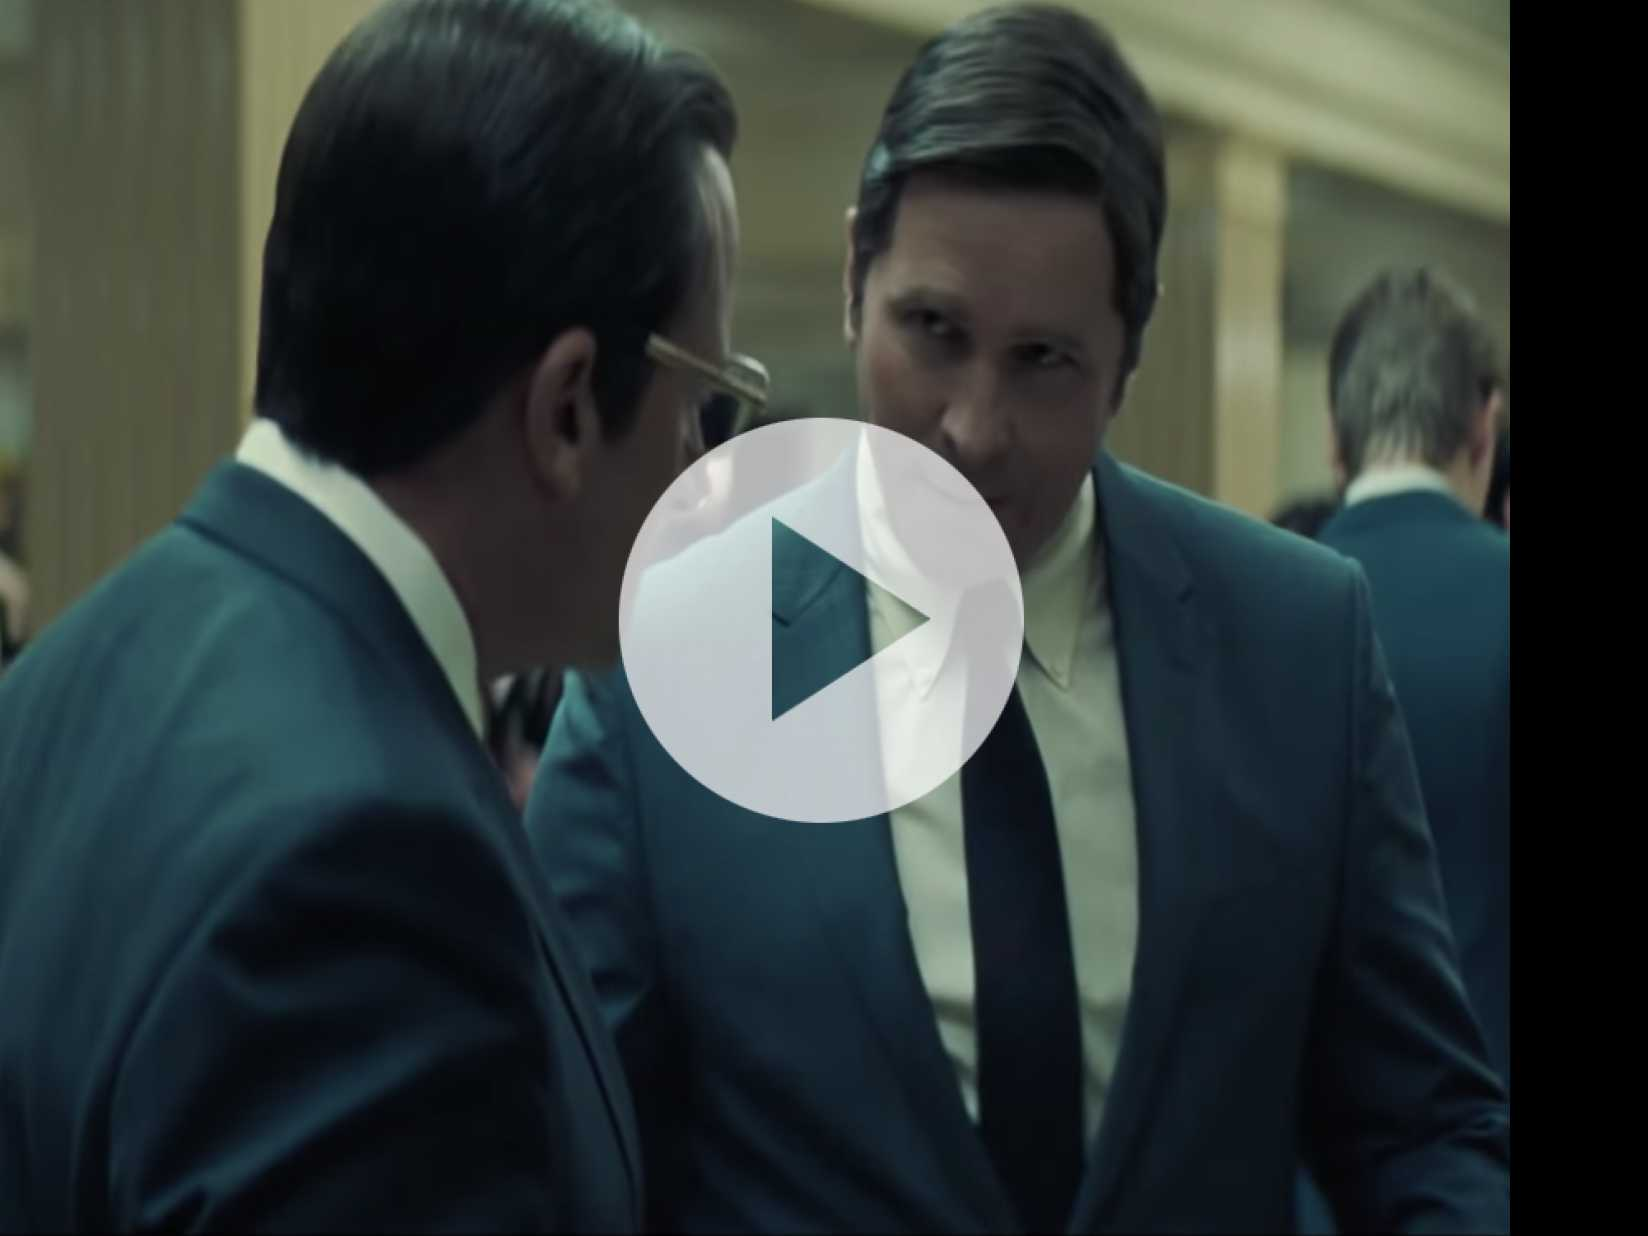 Watch: Musical Number Cut from 'Vice' Released Online